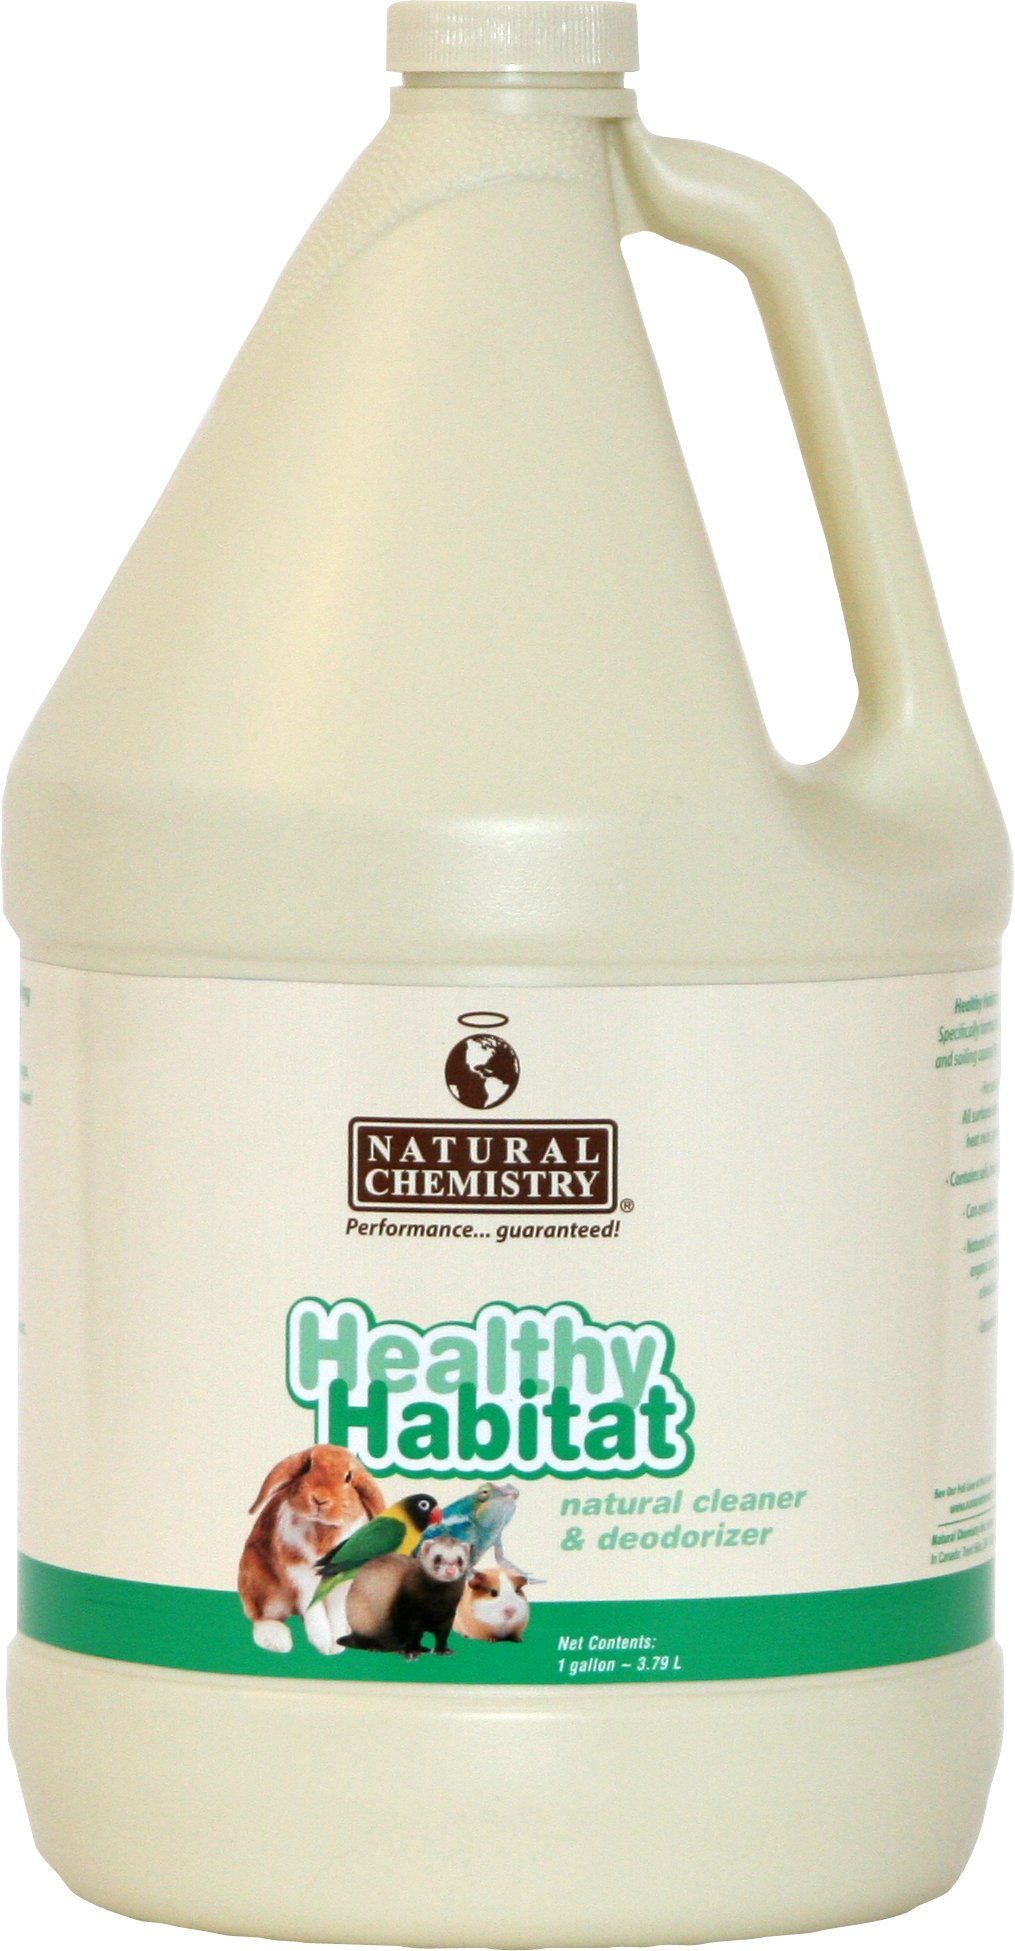 Natural Chemistry Healthy Habitat Pet Habitat Cleaner and Deodorizer, 1-Gallon by Natural Chemistry